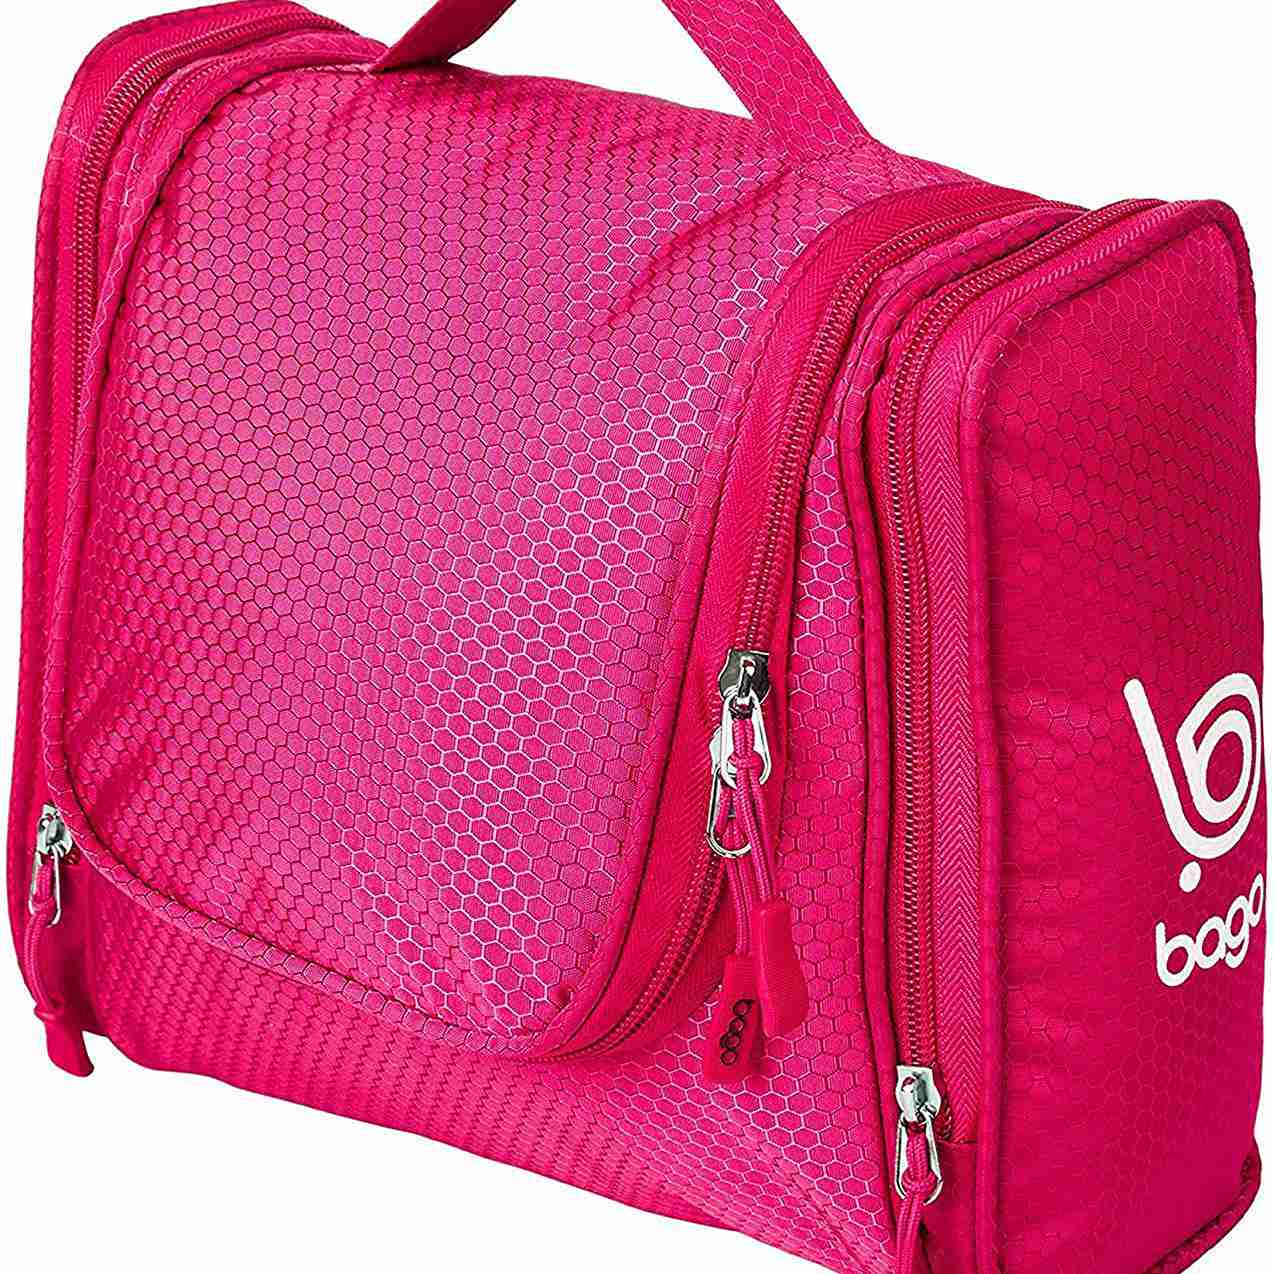 a4e43f062b Bago Hanging Toiletry Bag For Men   Women - Toiletries   Shave Travel  Organizer